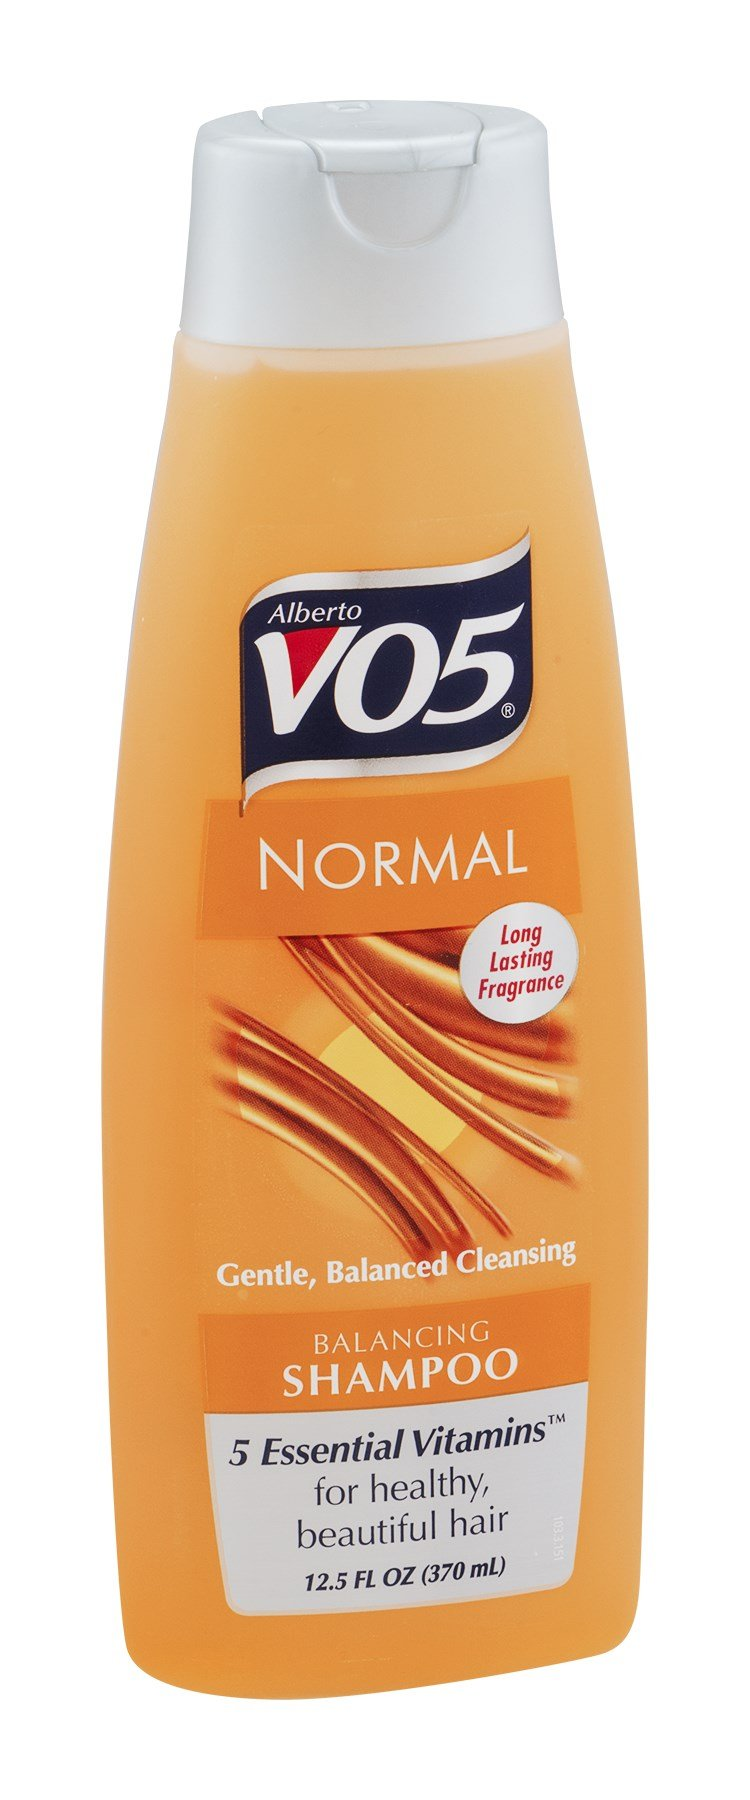 Alberto VO5 Normal Balancing Shampoo, Pack of 18 by Alberto VO5